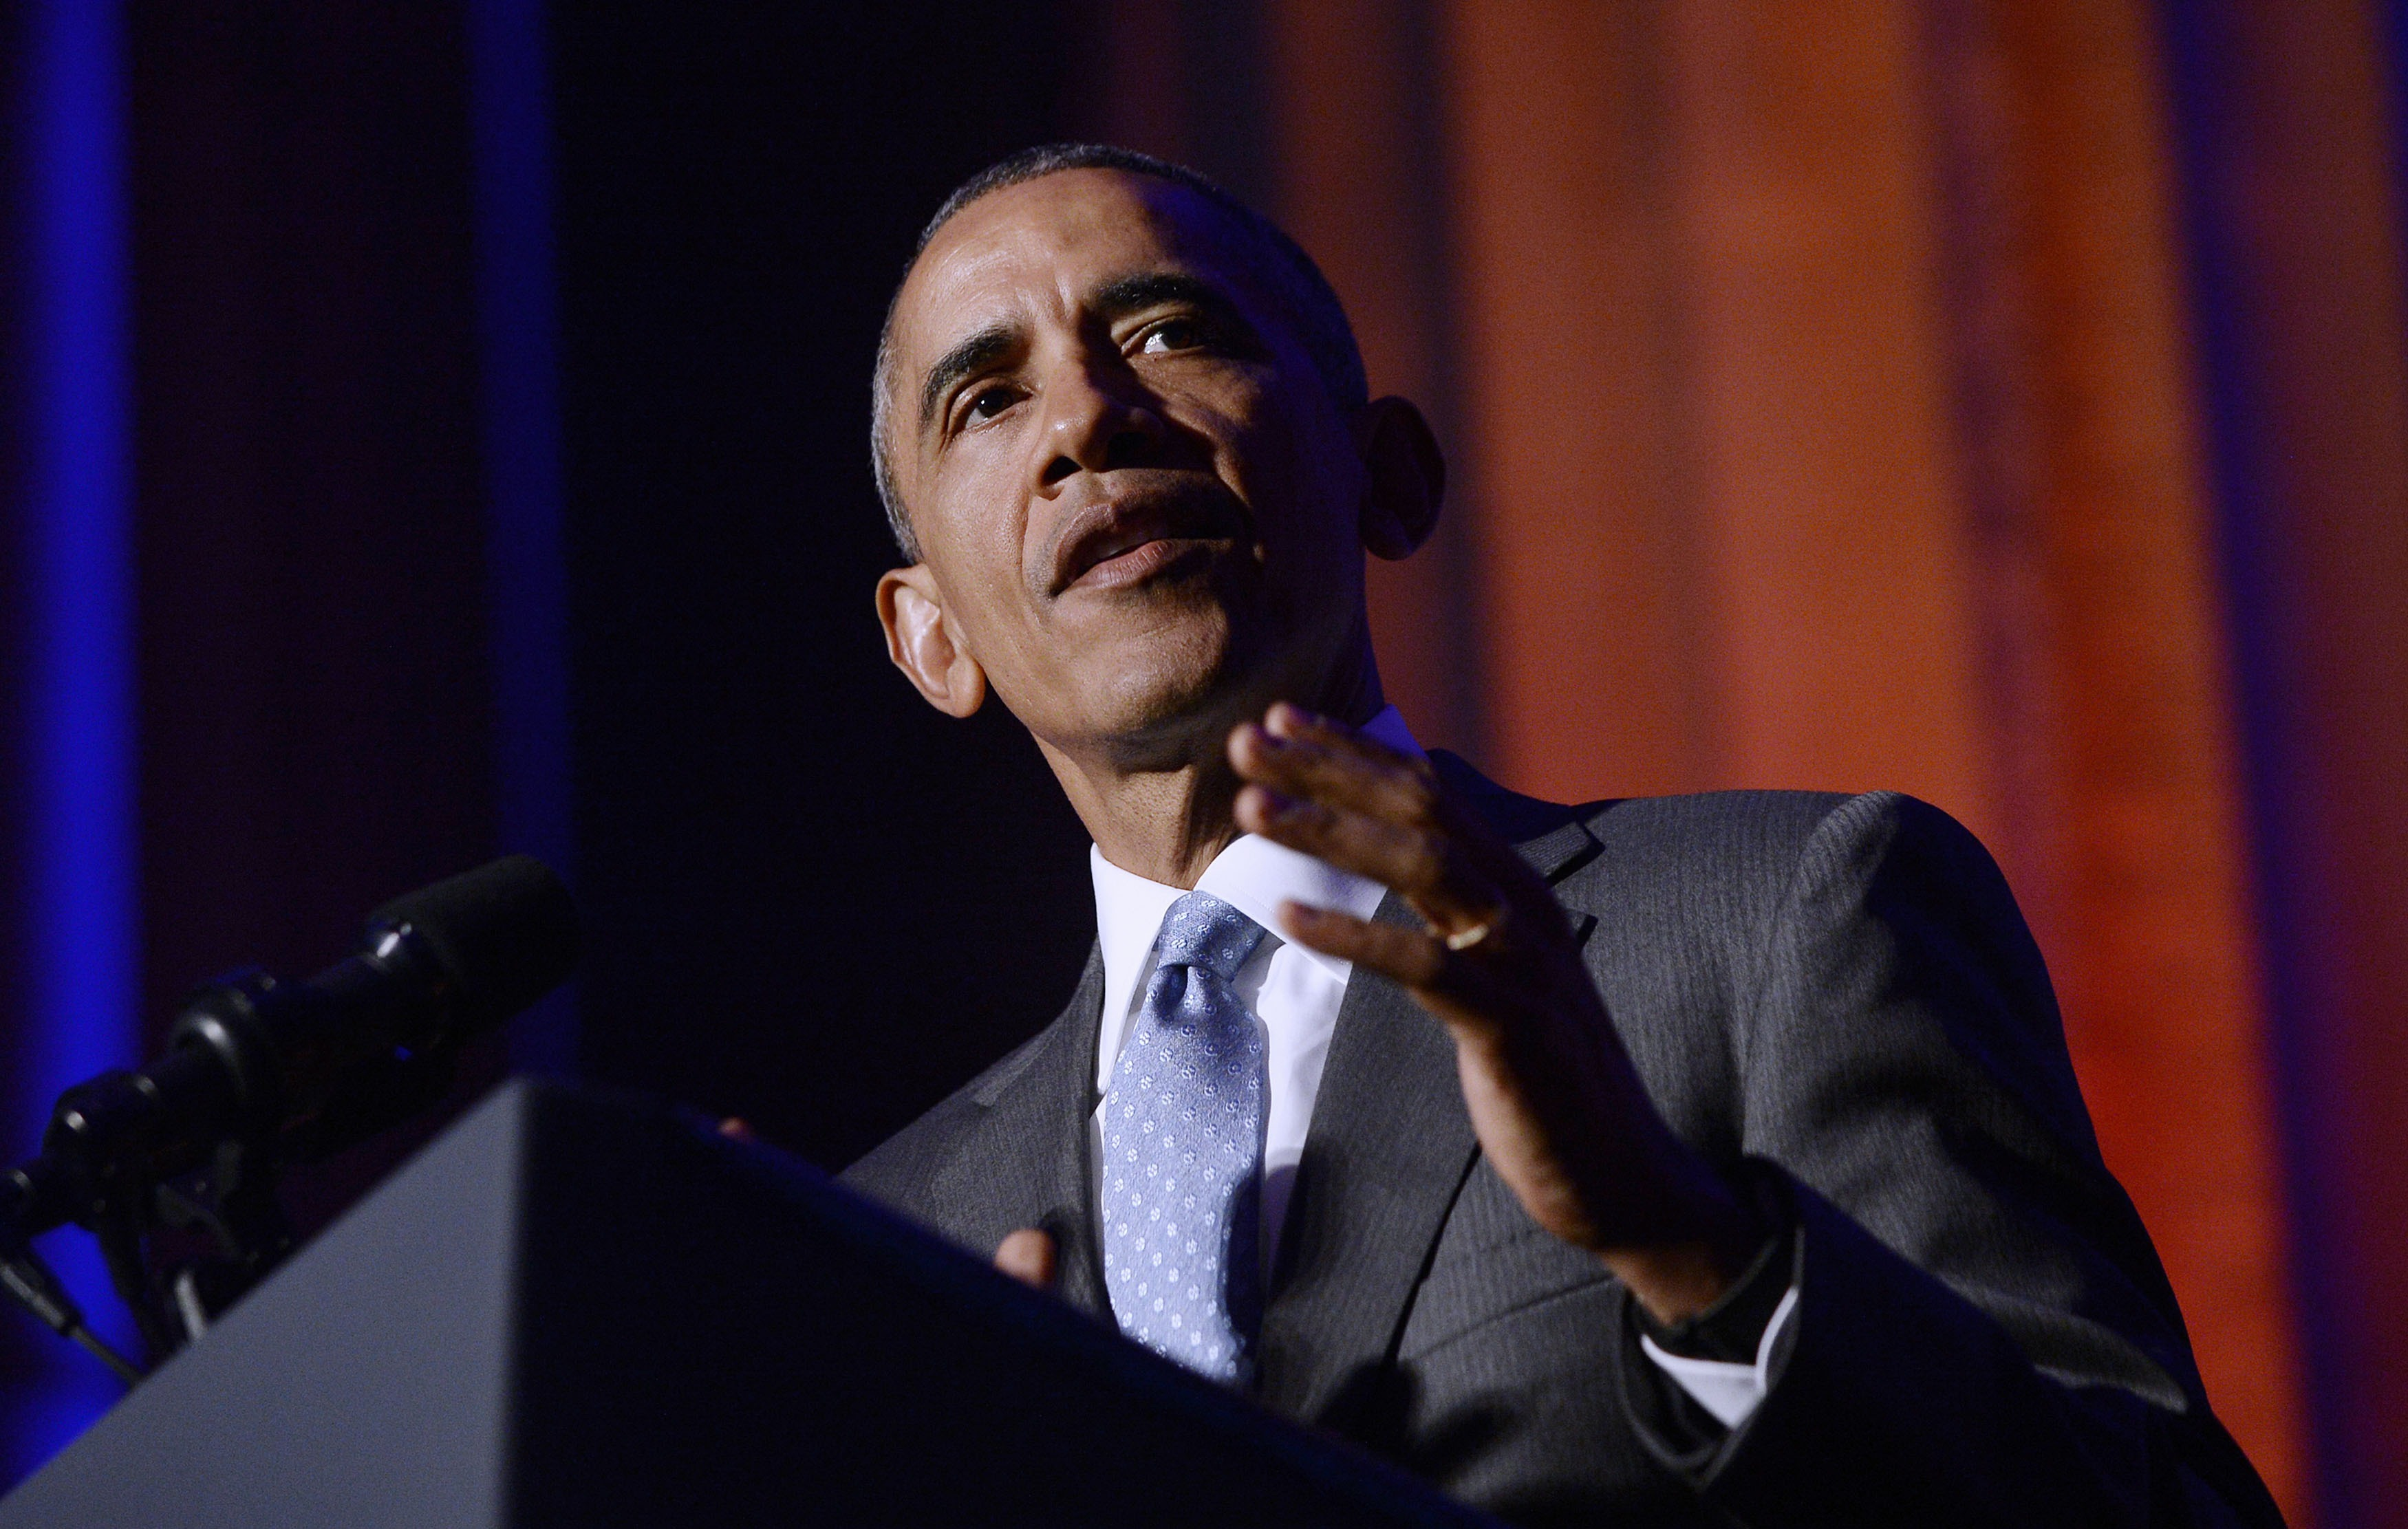 President Barack Obama Speaks At The Toner Prize For Excellence In Political Reporting Awards Dinner